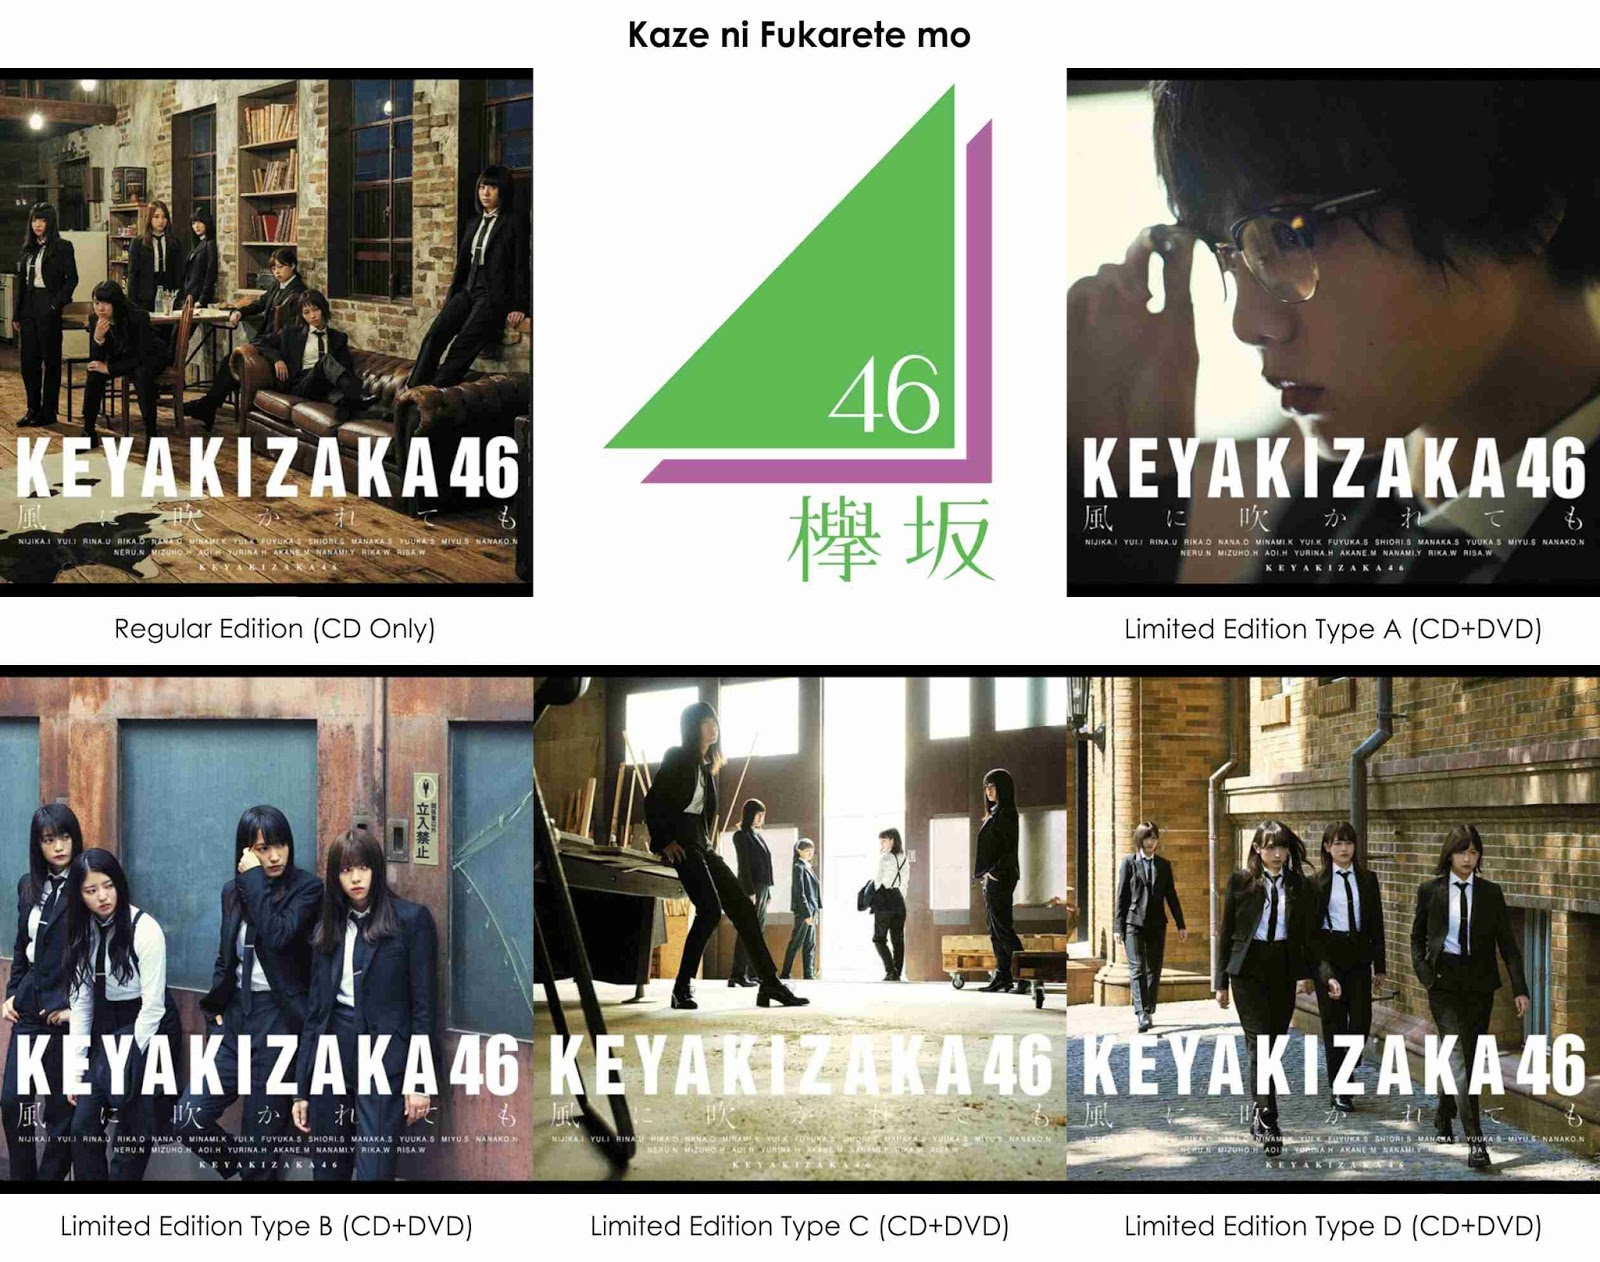 keyakizaka46 5th single